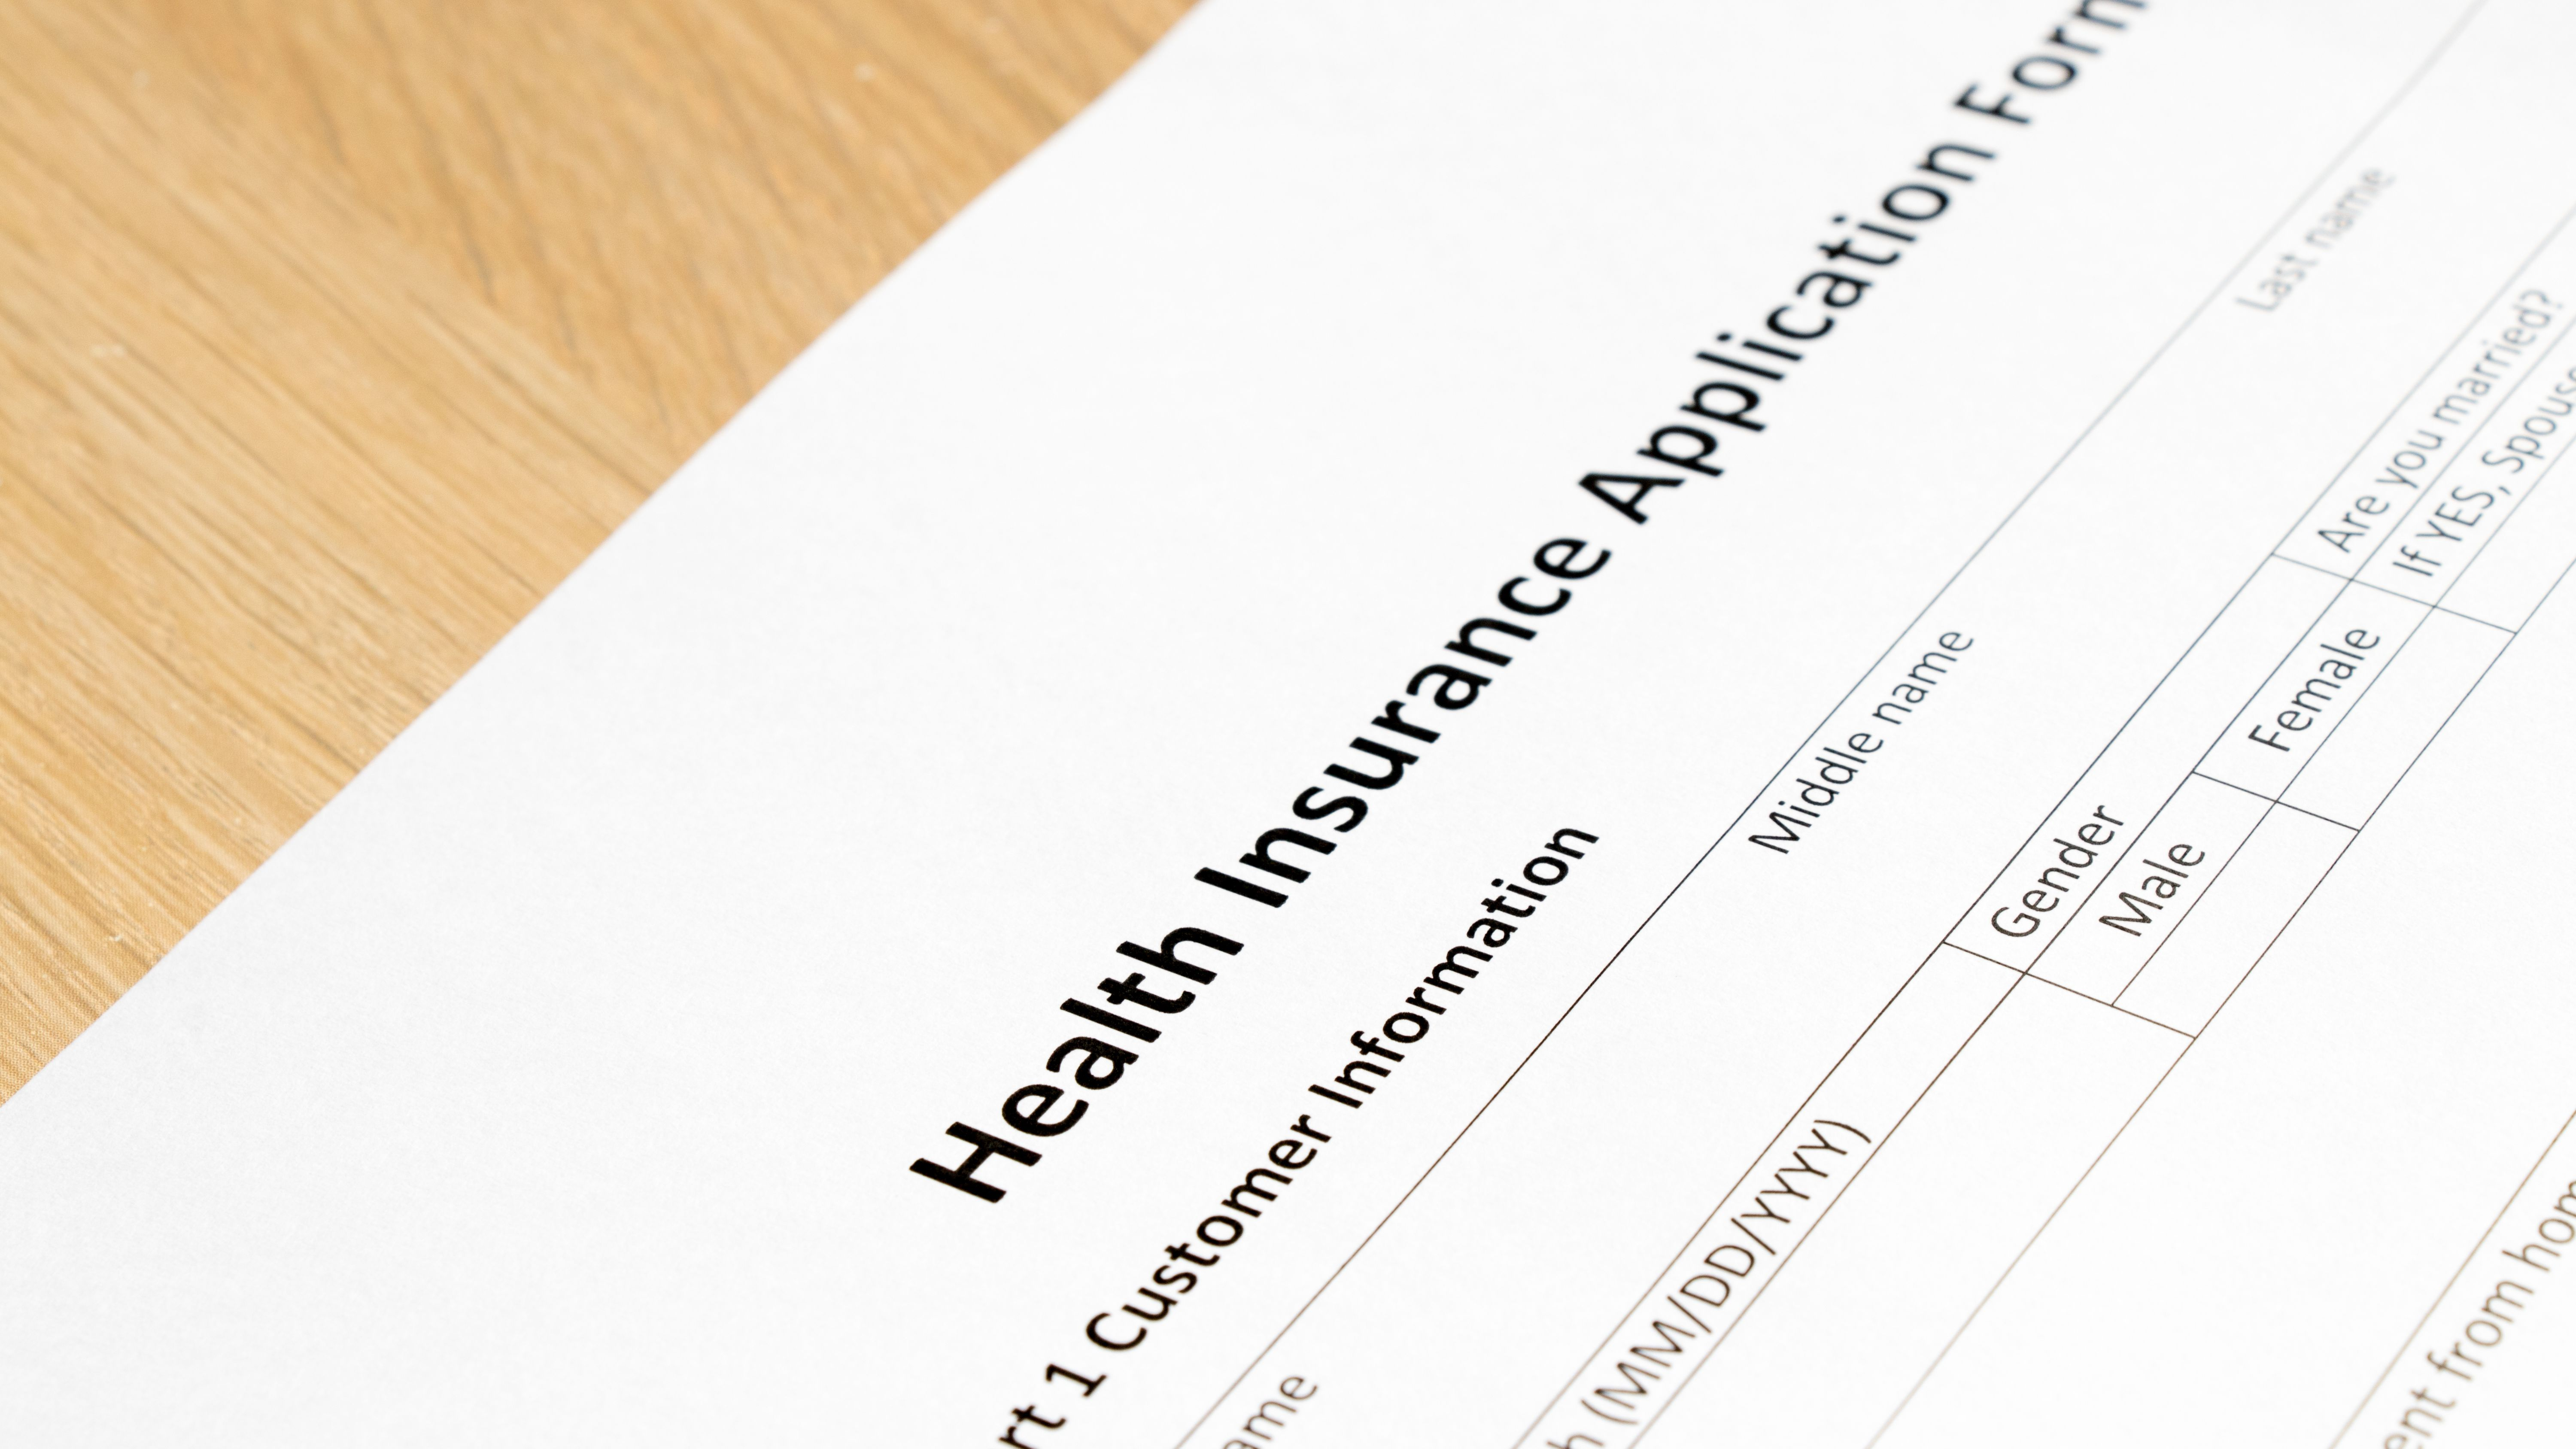 How To Appeal Health Insurance Claim Denials